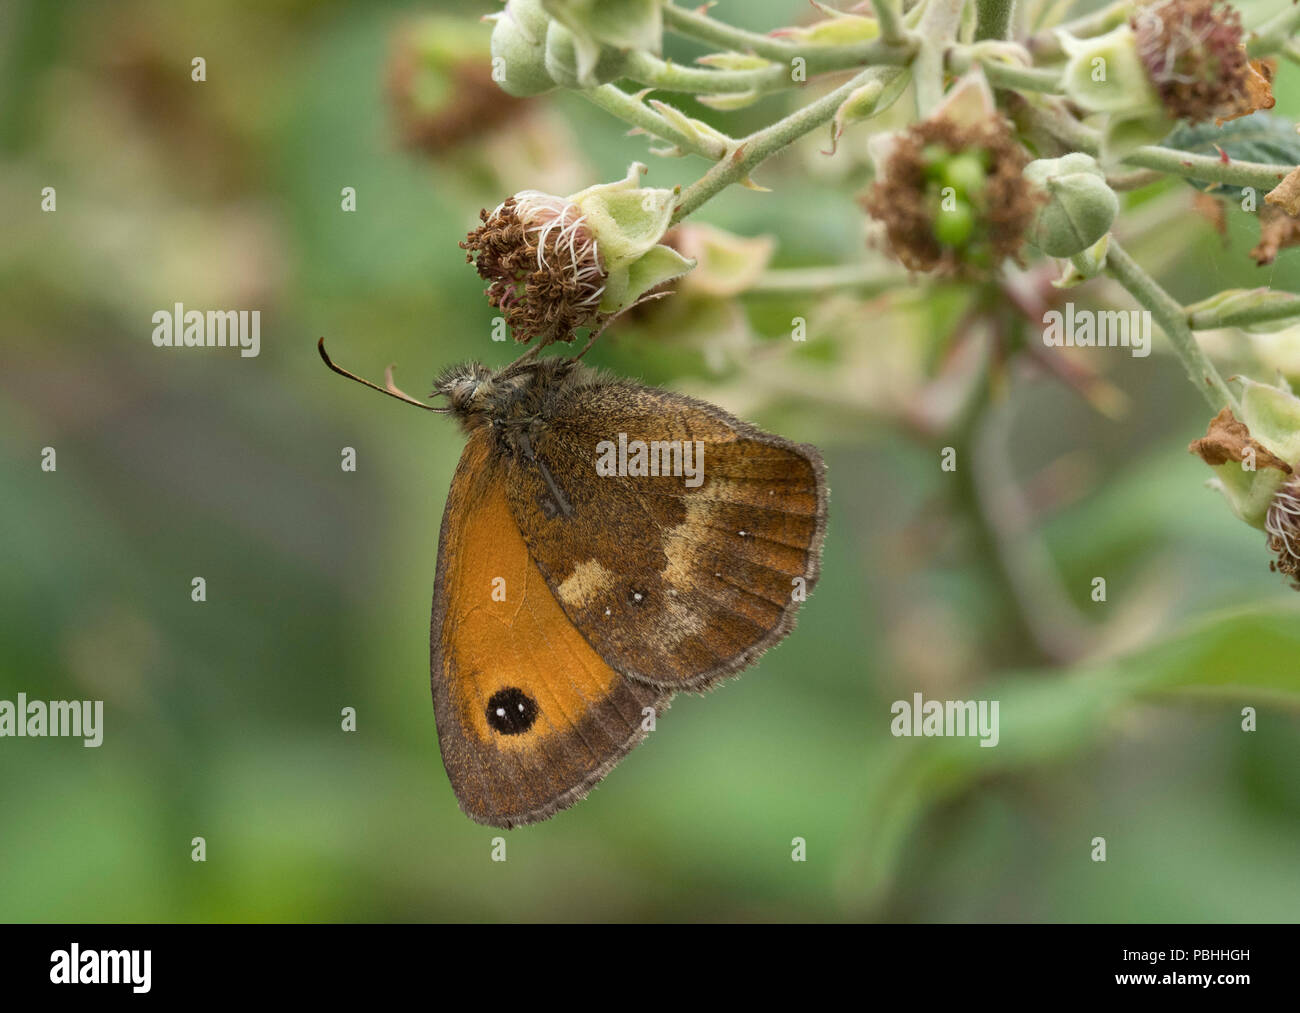 Pyronia tithonus Papillon, Gatekeeper, seul adulte se nourrit de fleurs, Worcestershie bramble, UK Photo Stock